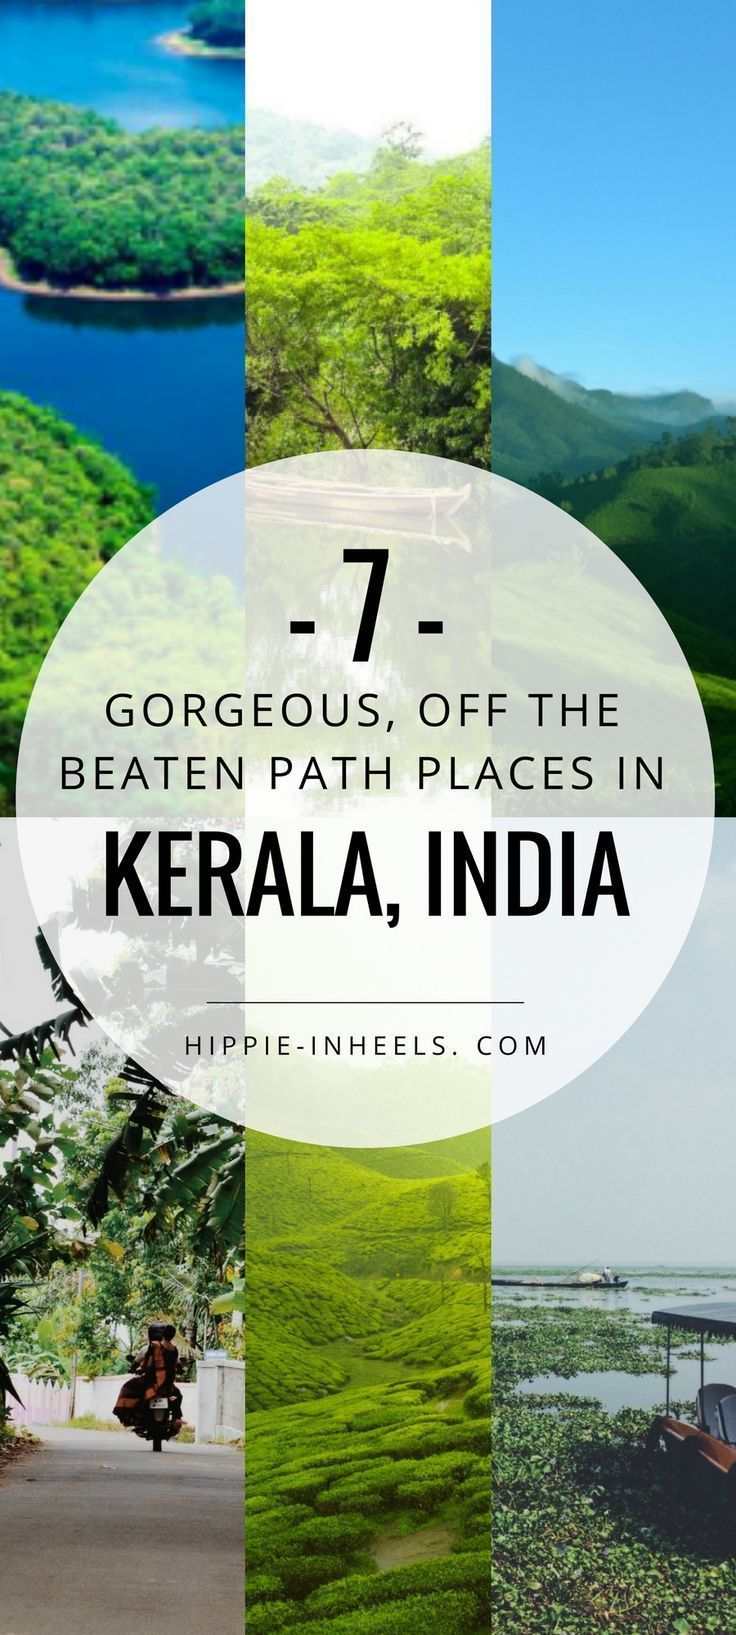 7 Offbeat Travel Destinations to Visit in Kerala That Will Blow Your Mind Only a... - #Blow #destinations #Kerala #Mind #Offbeat #travel #Visit